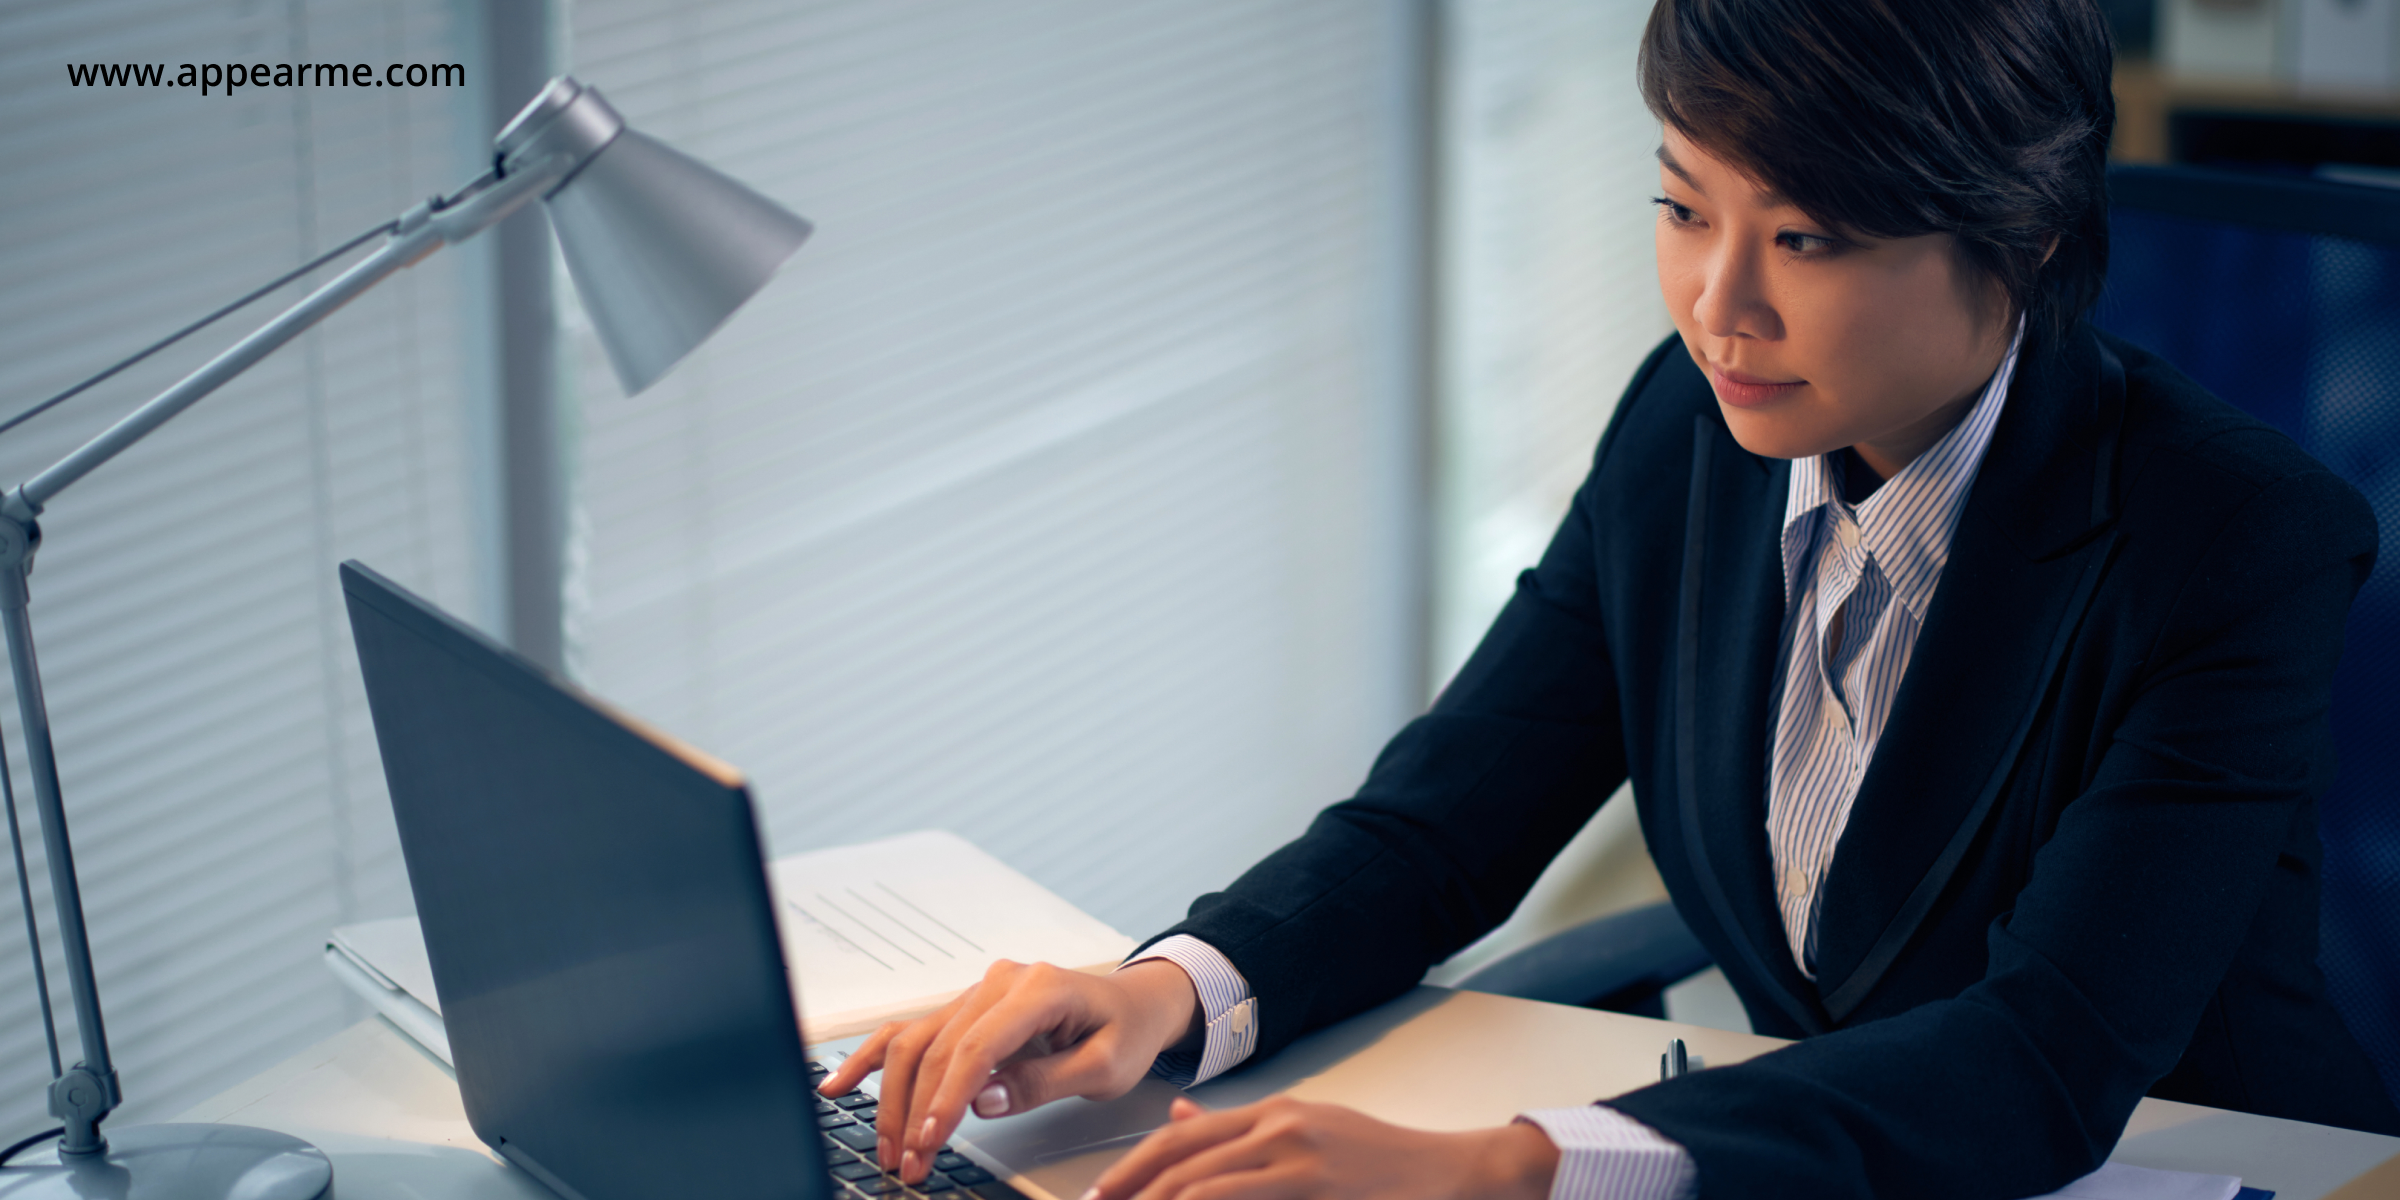 Get More Done in Less Time – Hire Freelance Lawyers with AppearMe